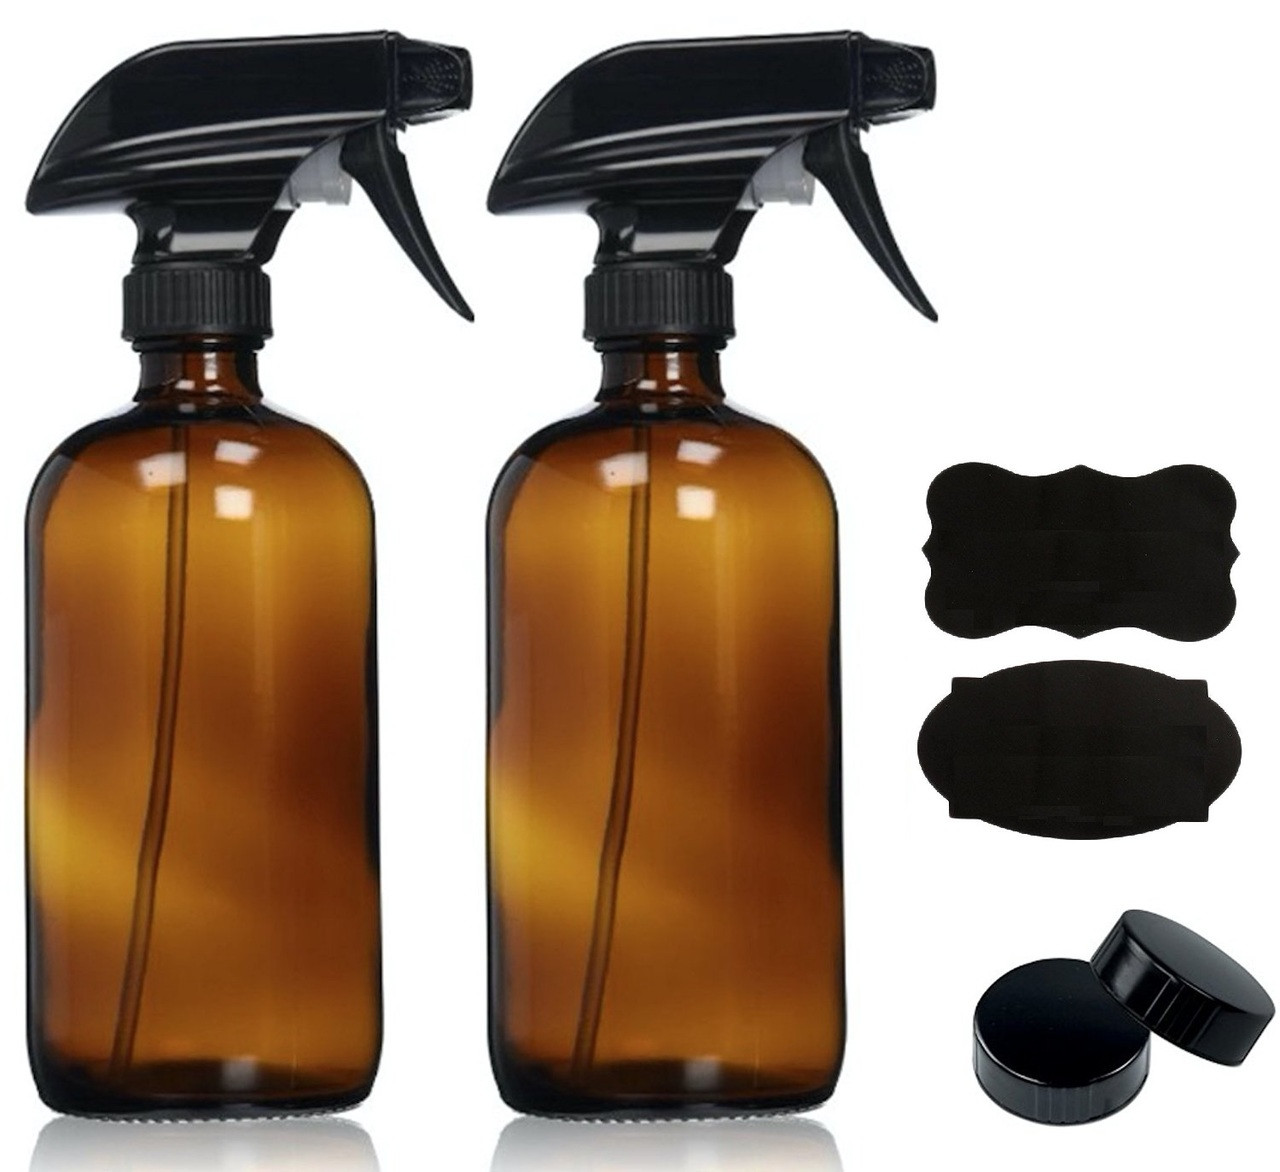 16oz 2 pack empty amber glass spray bottles with poly cone caps u0026 labels